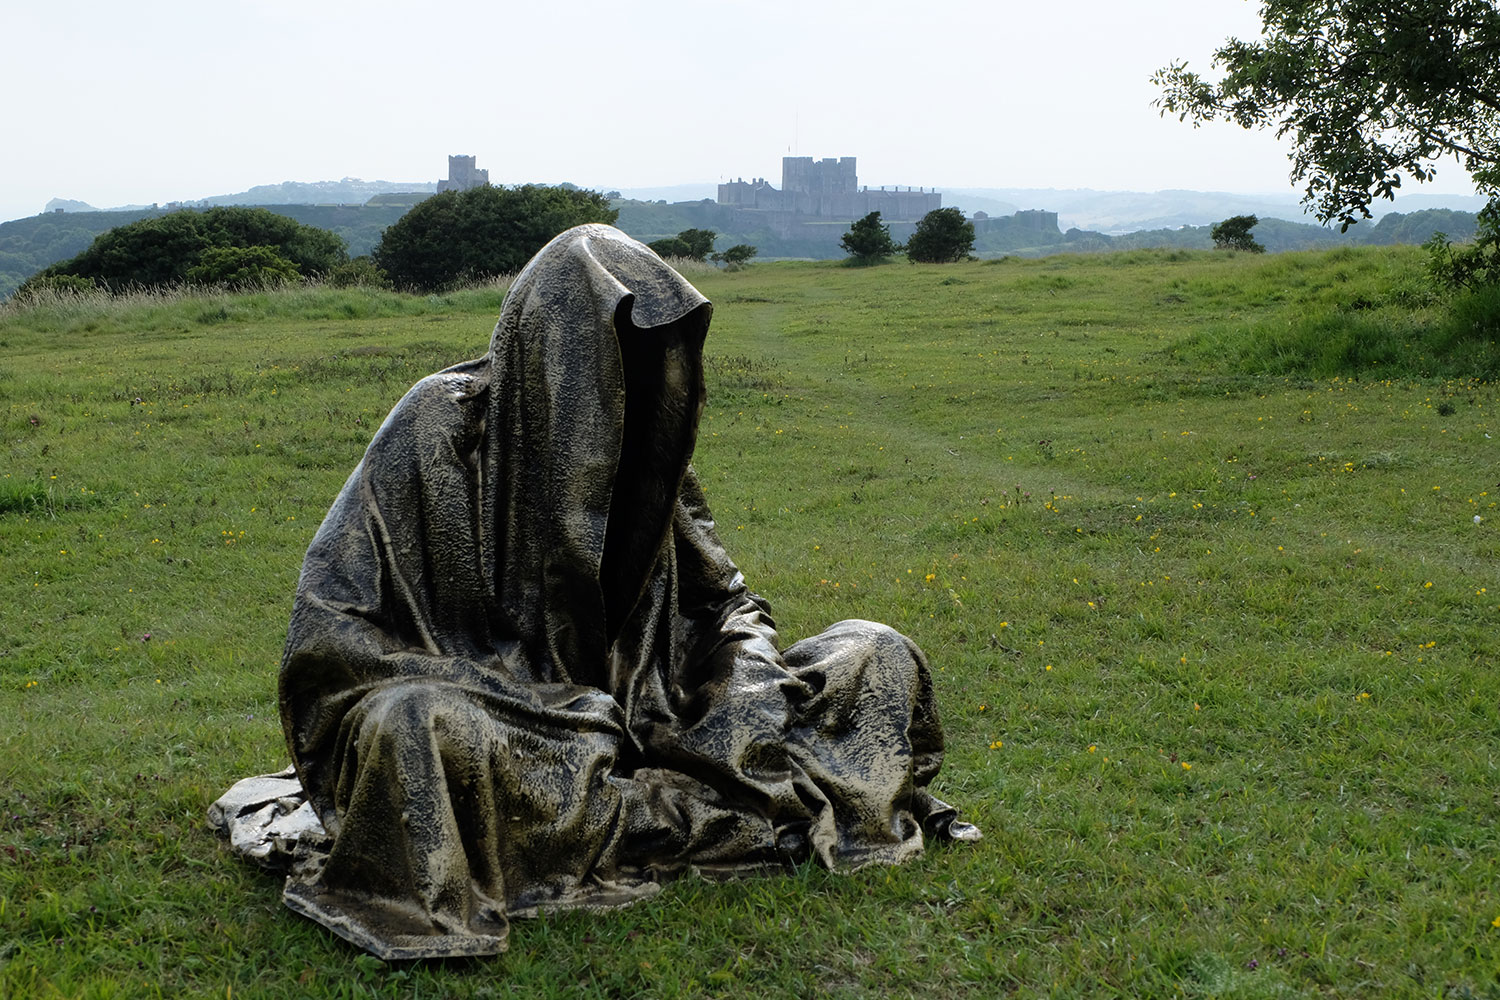 guardians-of-guardians-of-time-manfred-kili-kielnhofer-uk-england-castle-dover-public-contemporary-art-arts-design-sculpture-6327